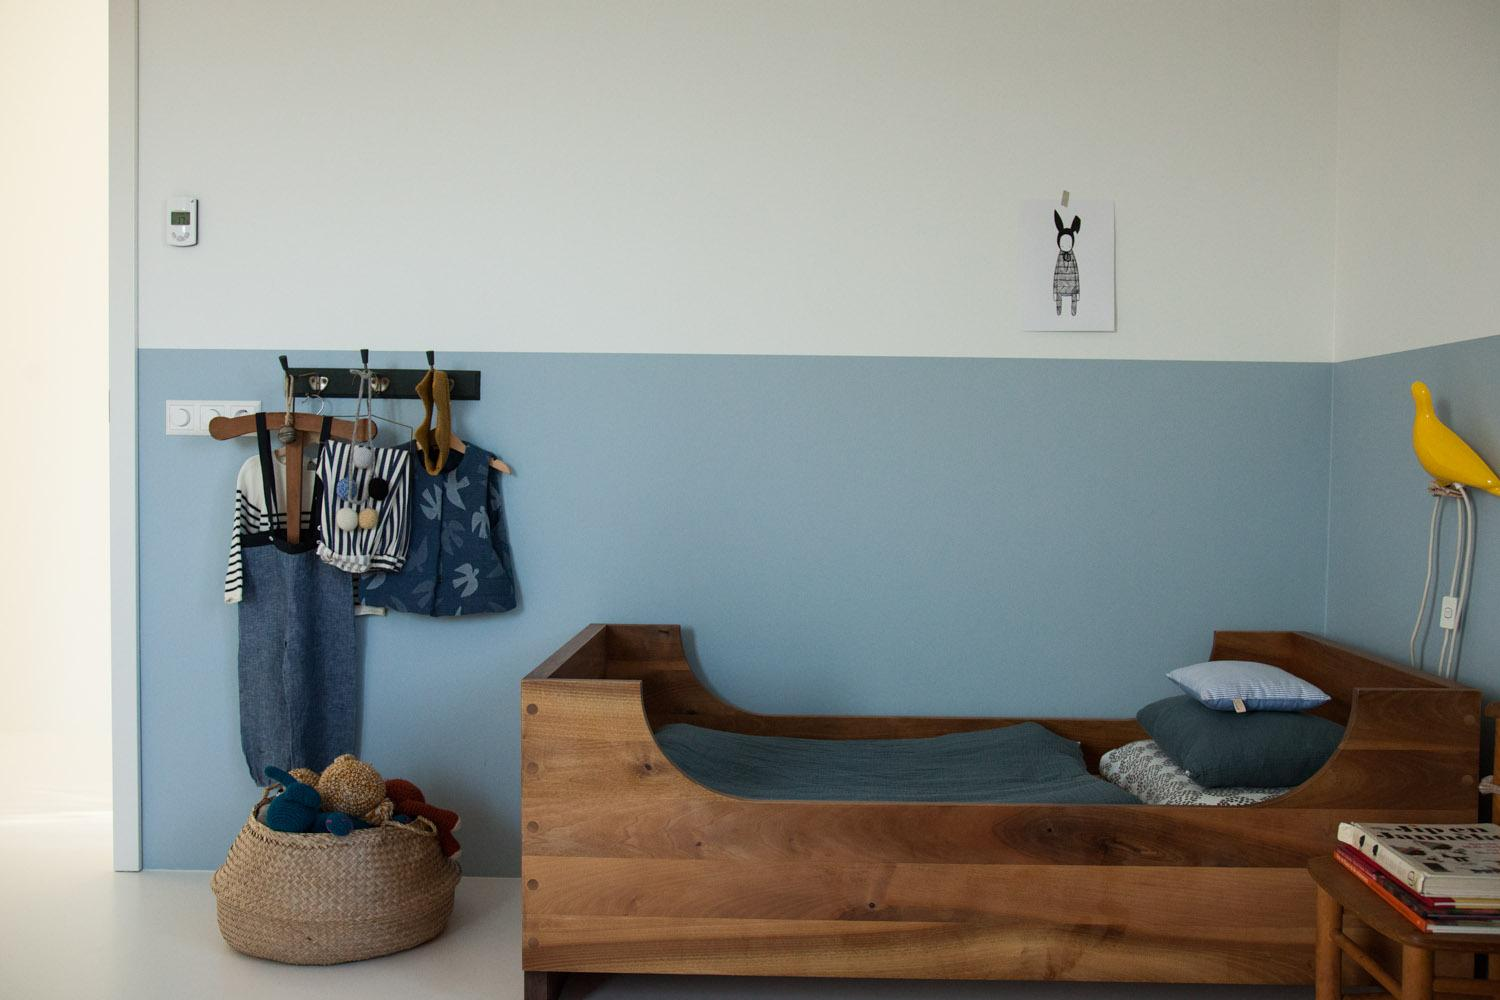 Child's Bedroom of Guus, 4 years old #1